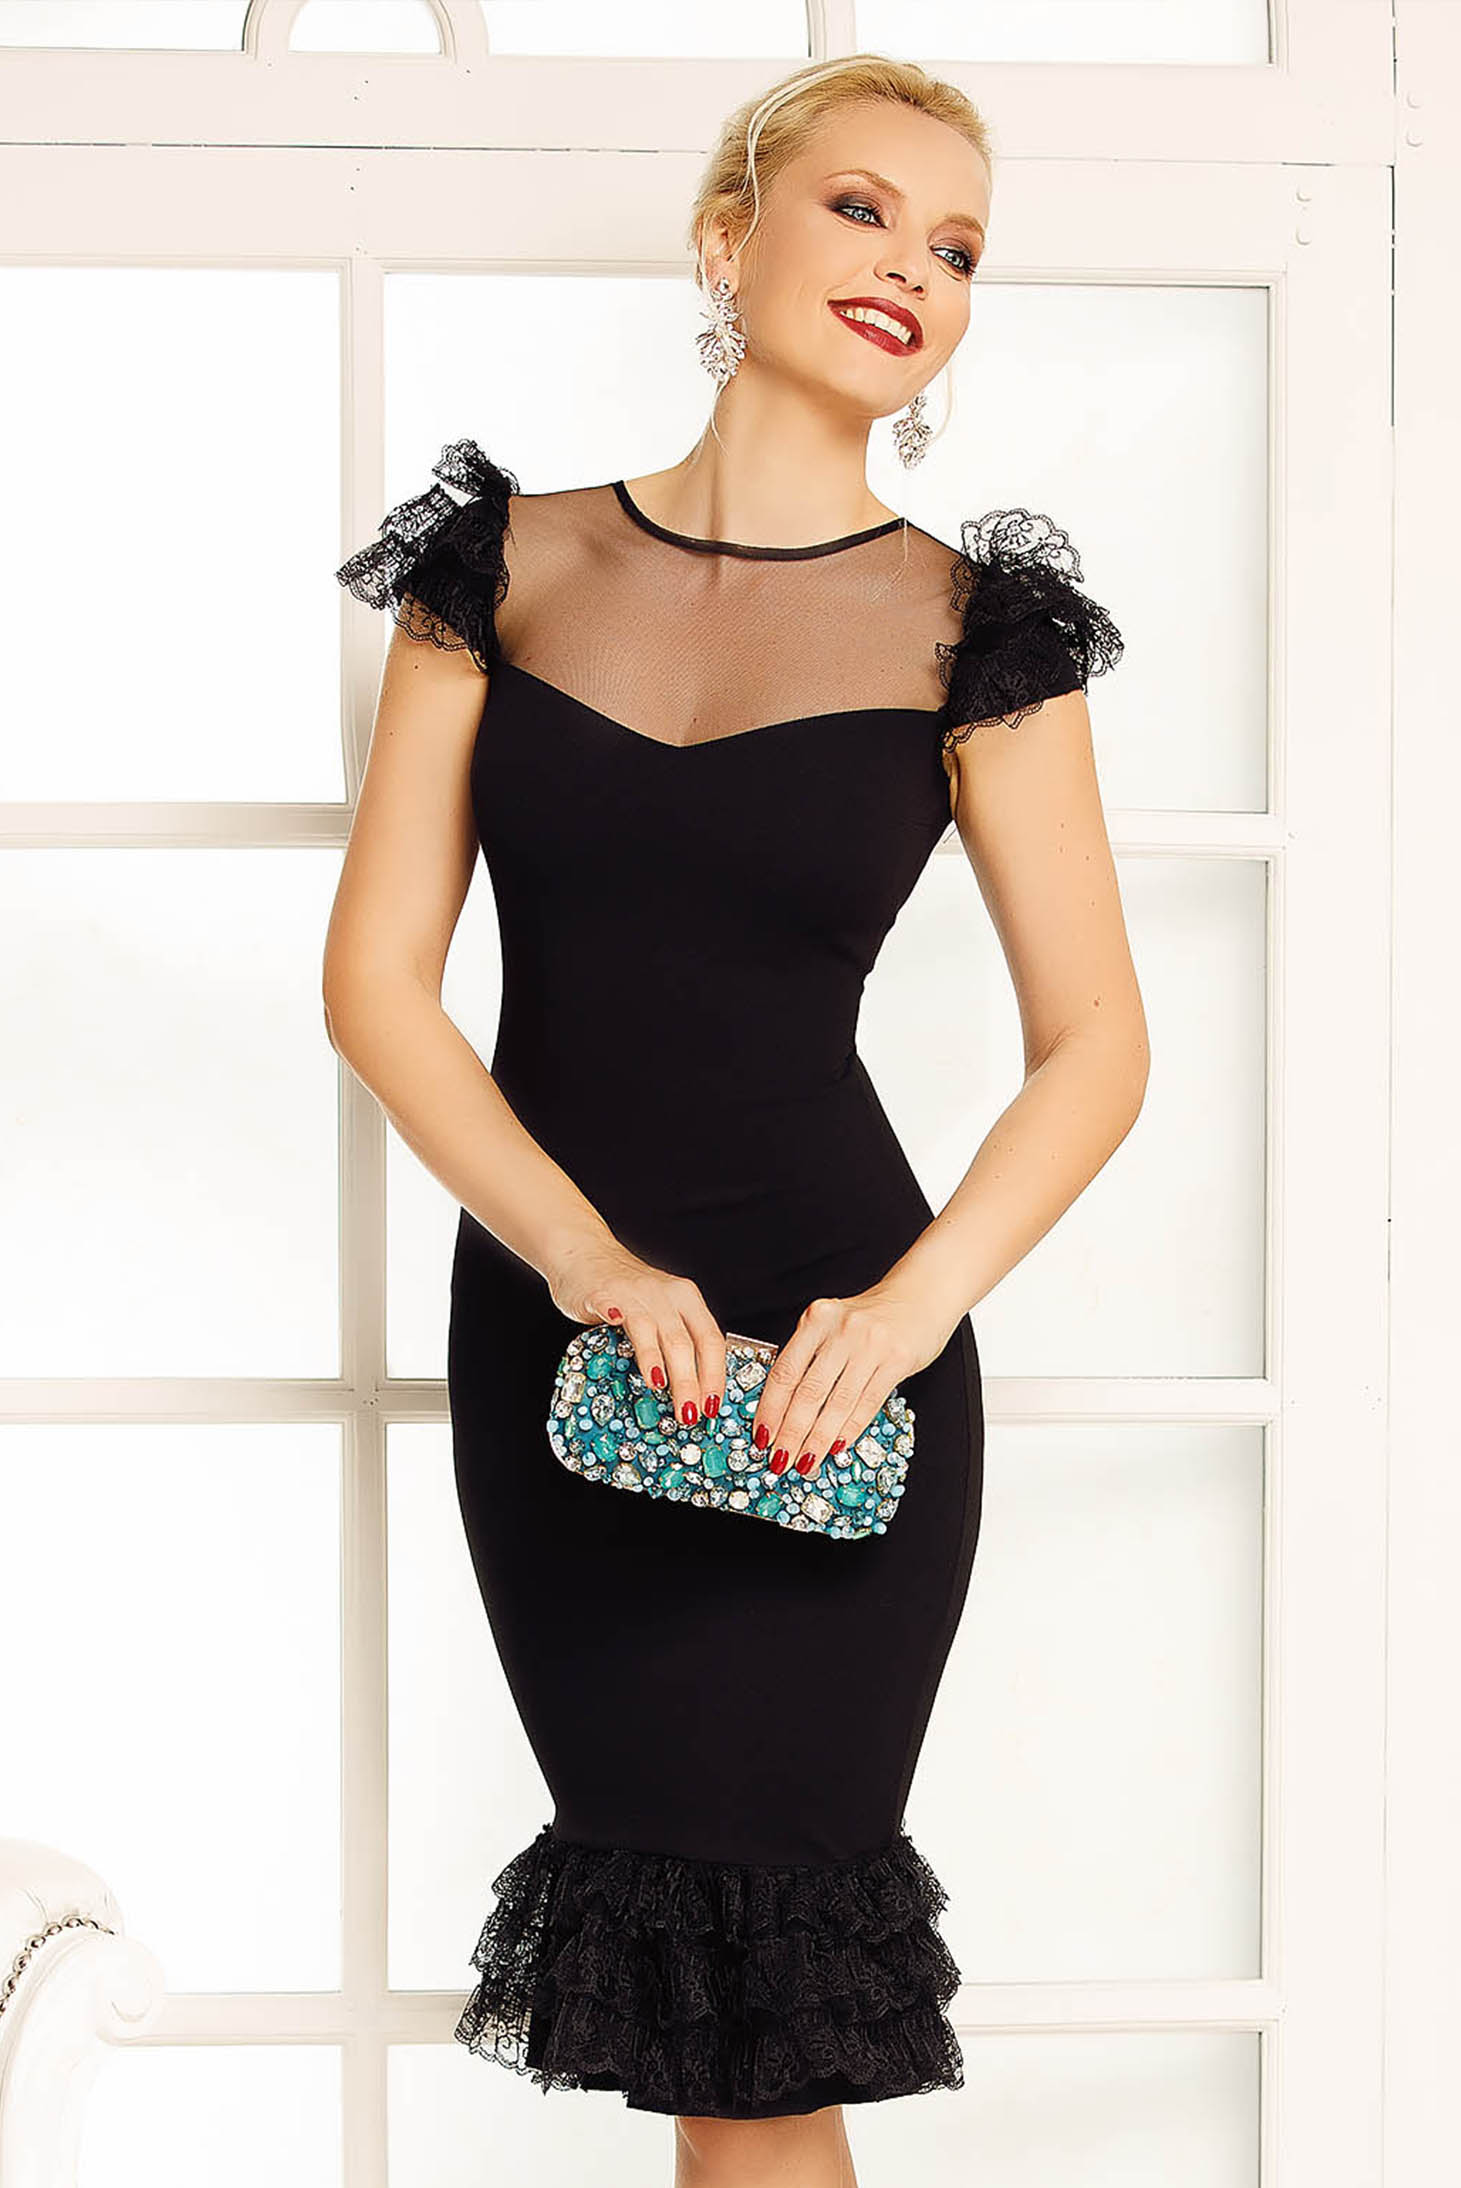 Fofy black occasional pencil dress with lace details